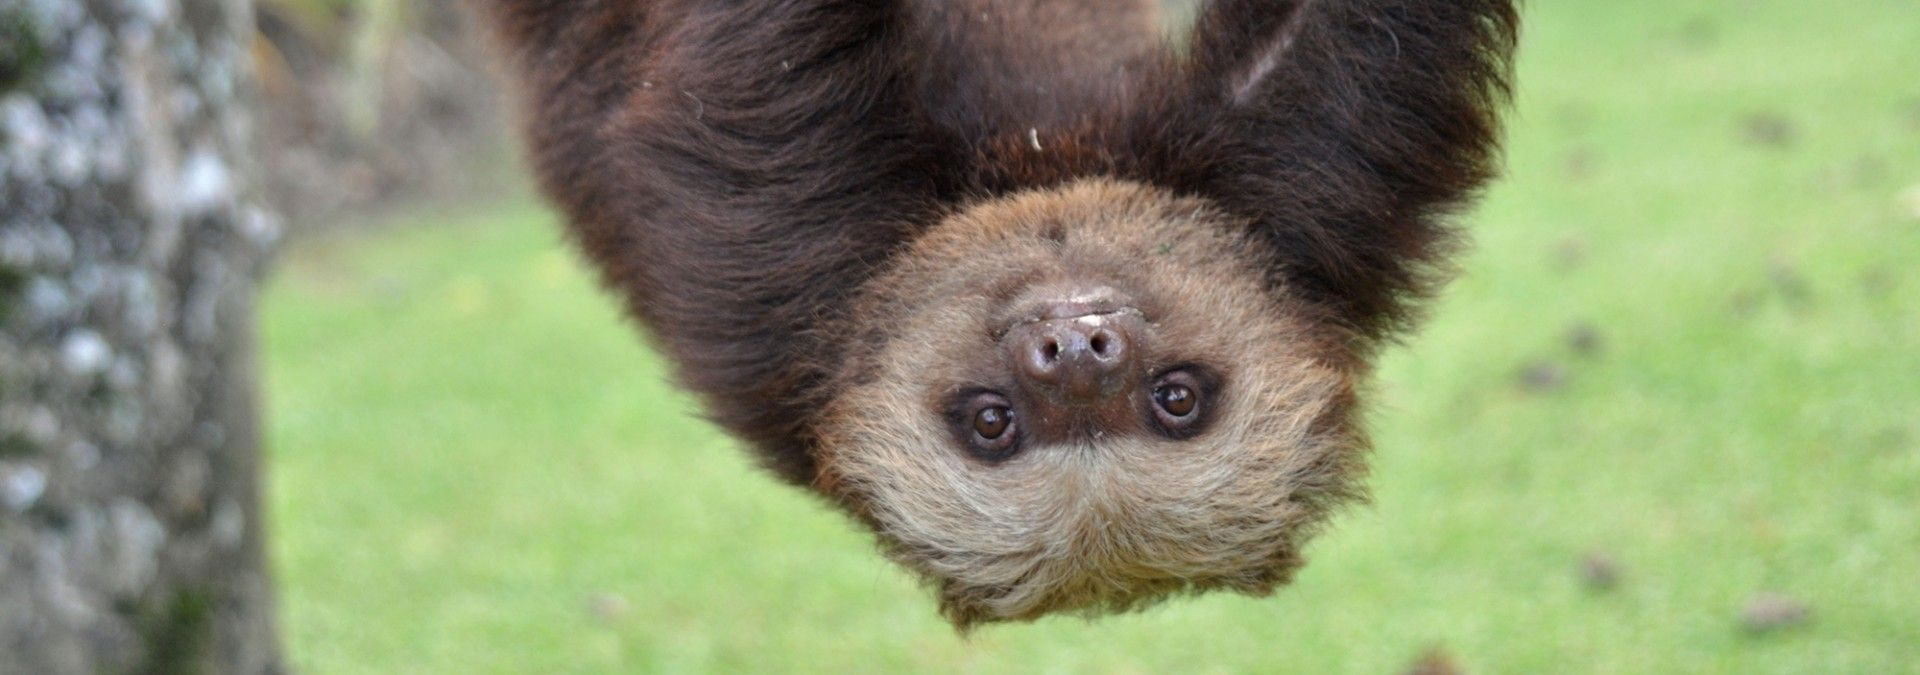 Sloth_hanging_from_tree_Costa_Rica.jpg